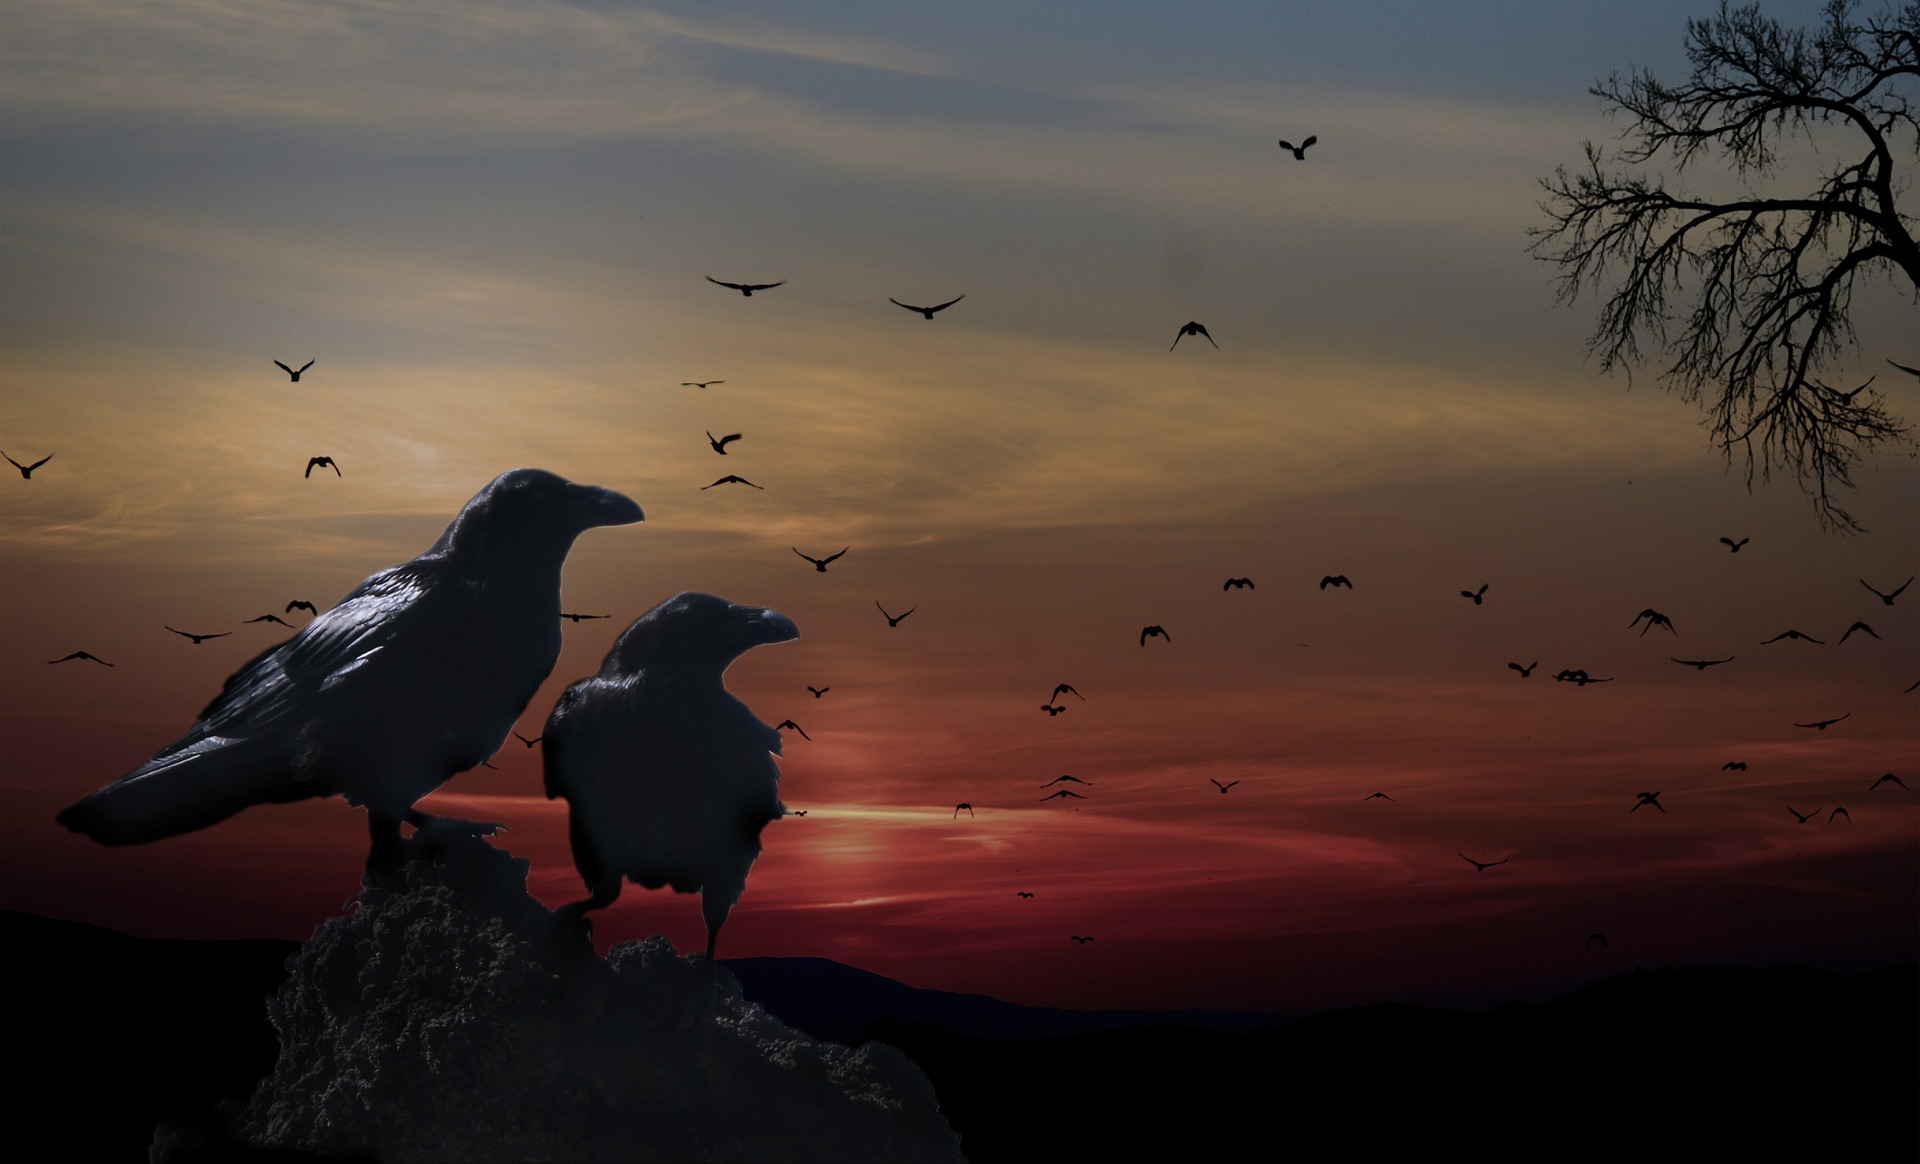 crows-559274_1920